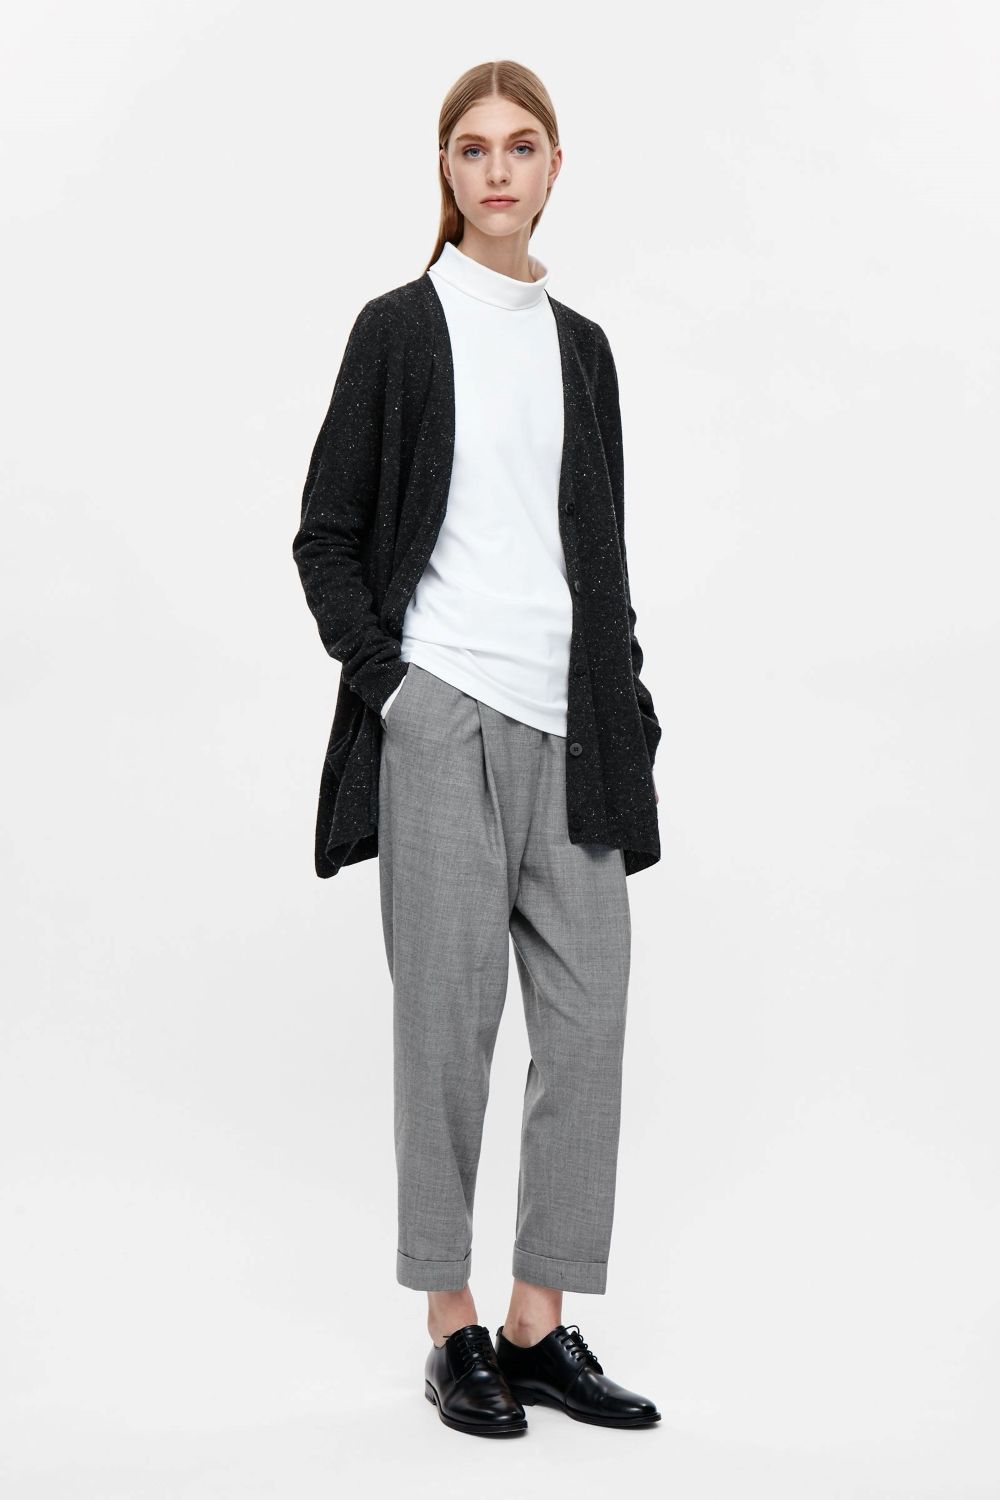 Designed for everyday wear, this lambswool cardigan is an elongated style with comfortable oversized proportions. Buttoning up at the front, it has a deep v-neckline, relaxed front pockets and soft ribbed edges.